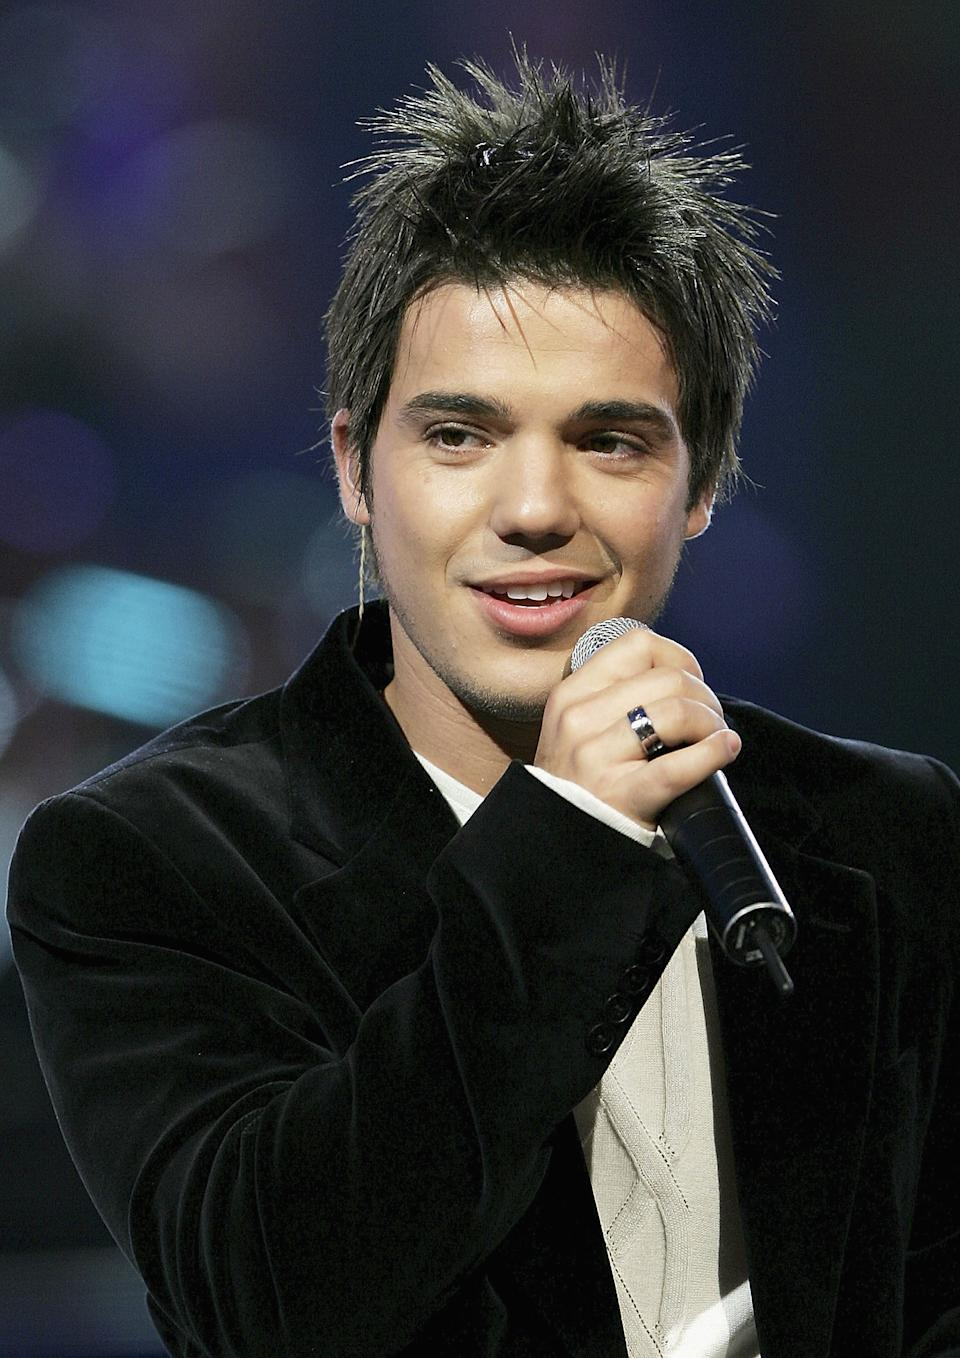 Australian Idol's Anthony Callea performs at the 2005 Carols by Candlelight on December 24, 2005 in Melbourne, Australia